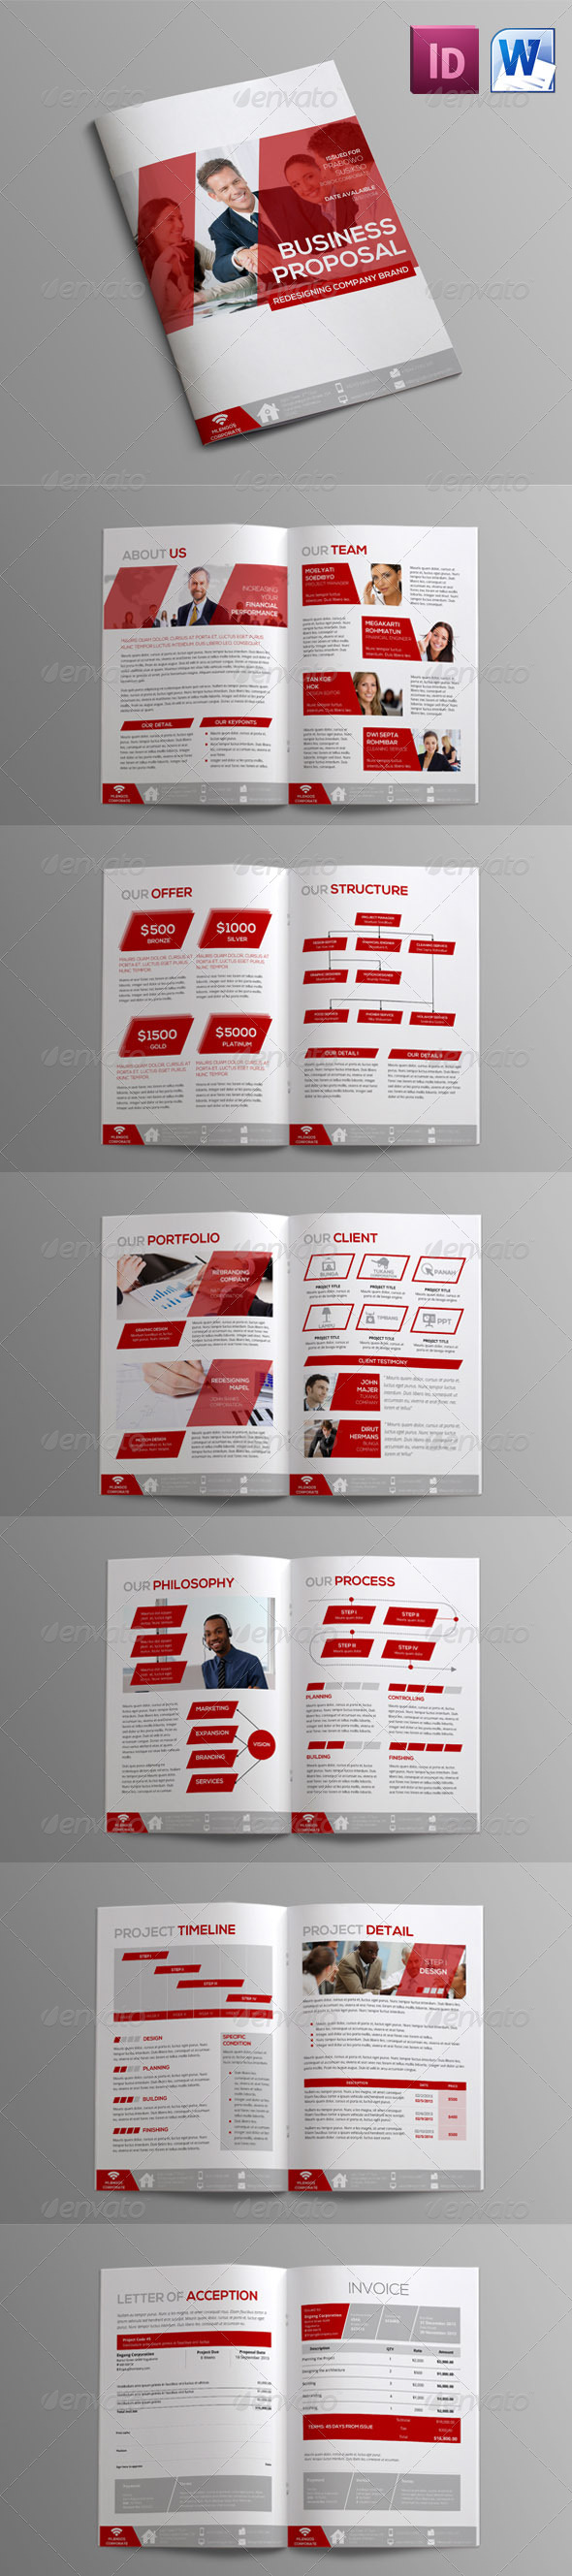 construction proposal templates%0A Sleman Clean Proposal Template Volume